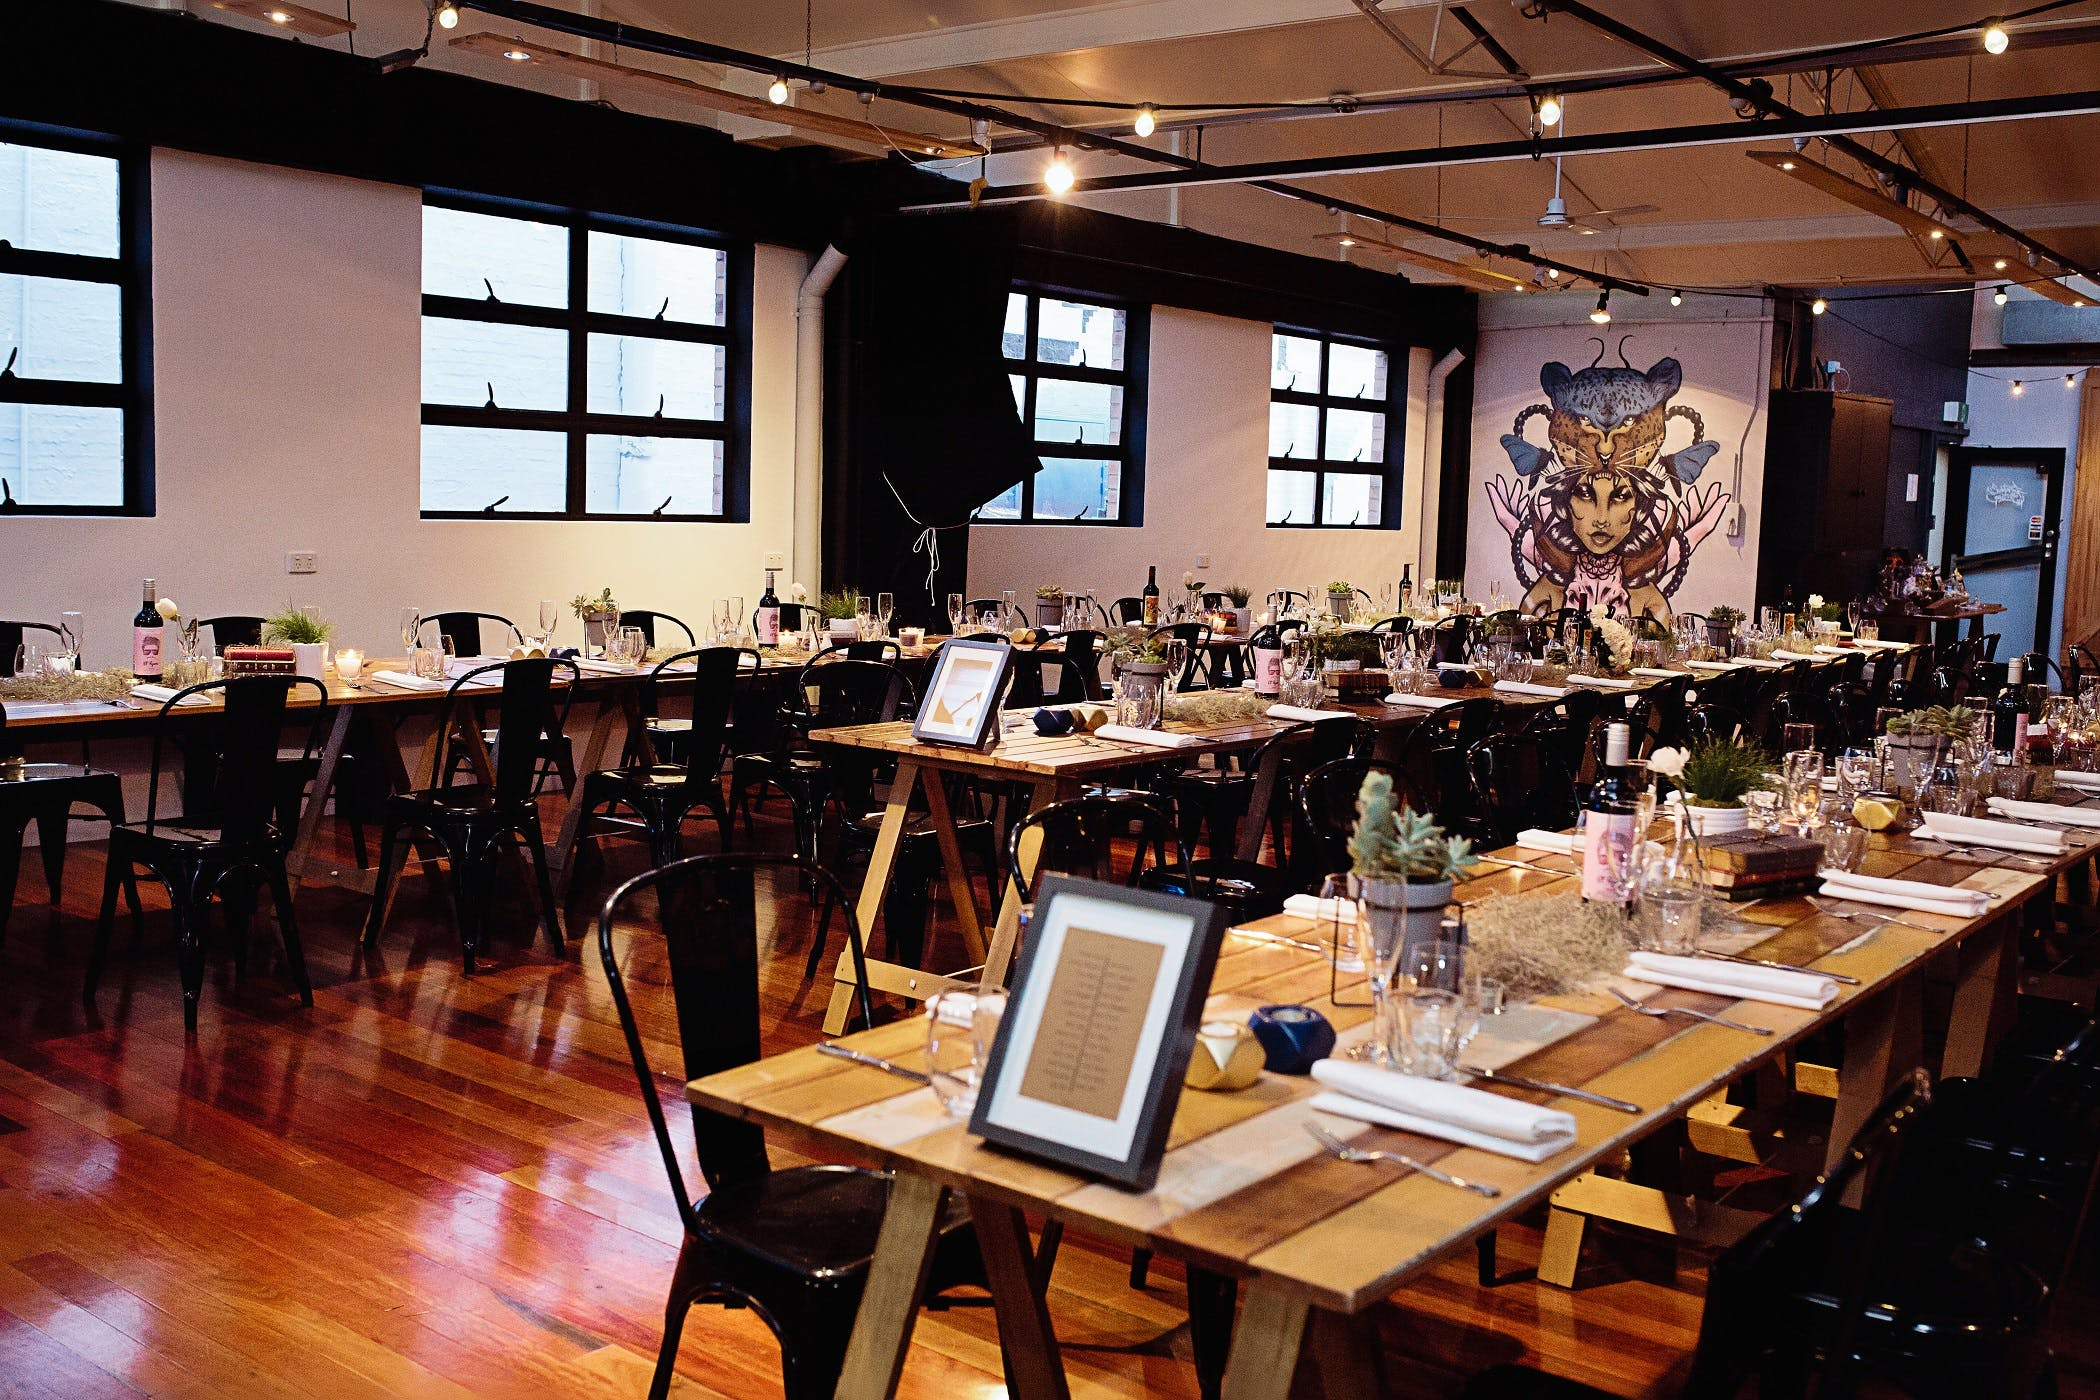 Beautifully decorated function room at Cupo, image 1